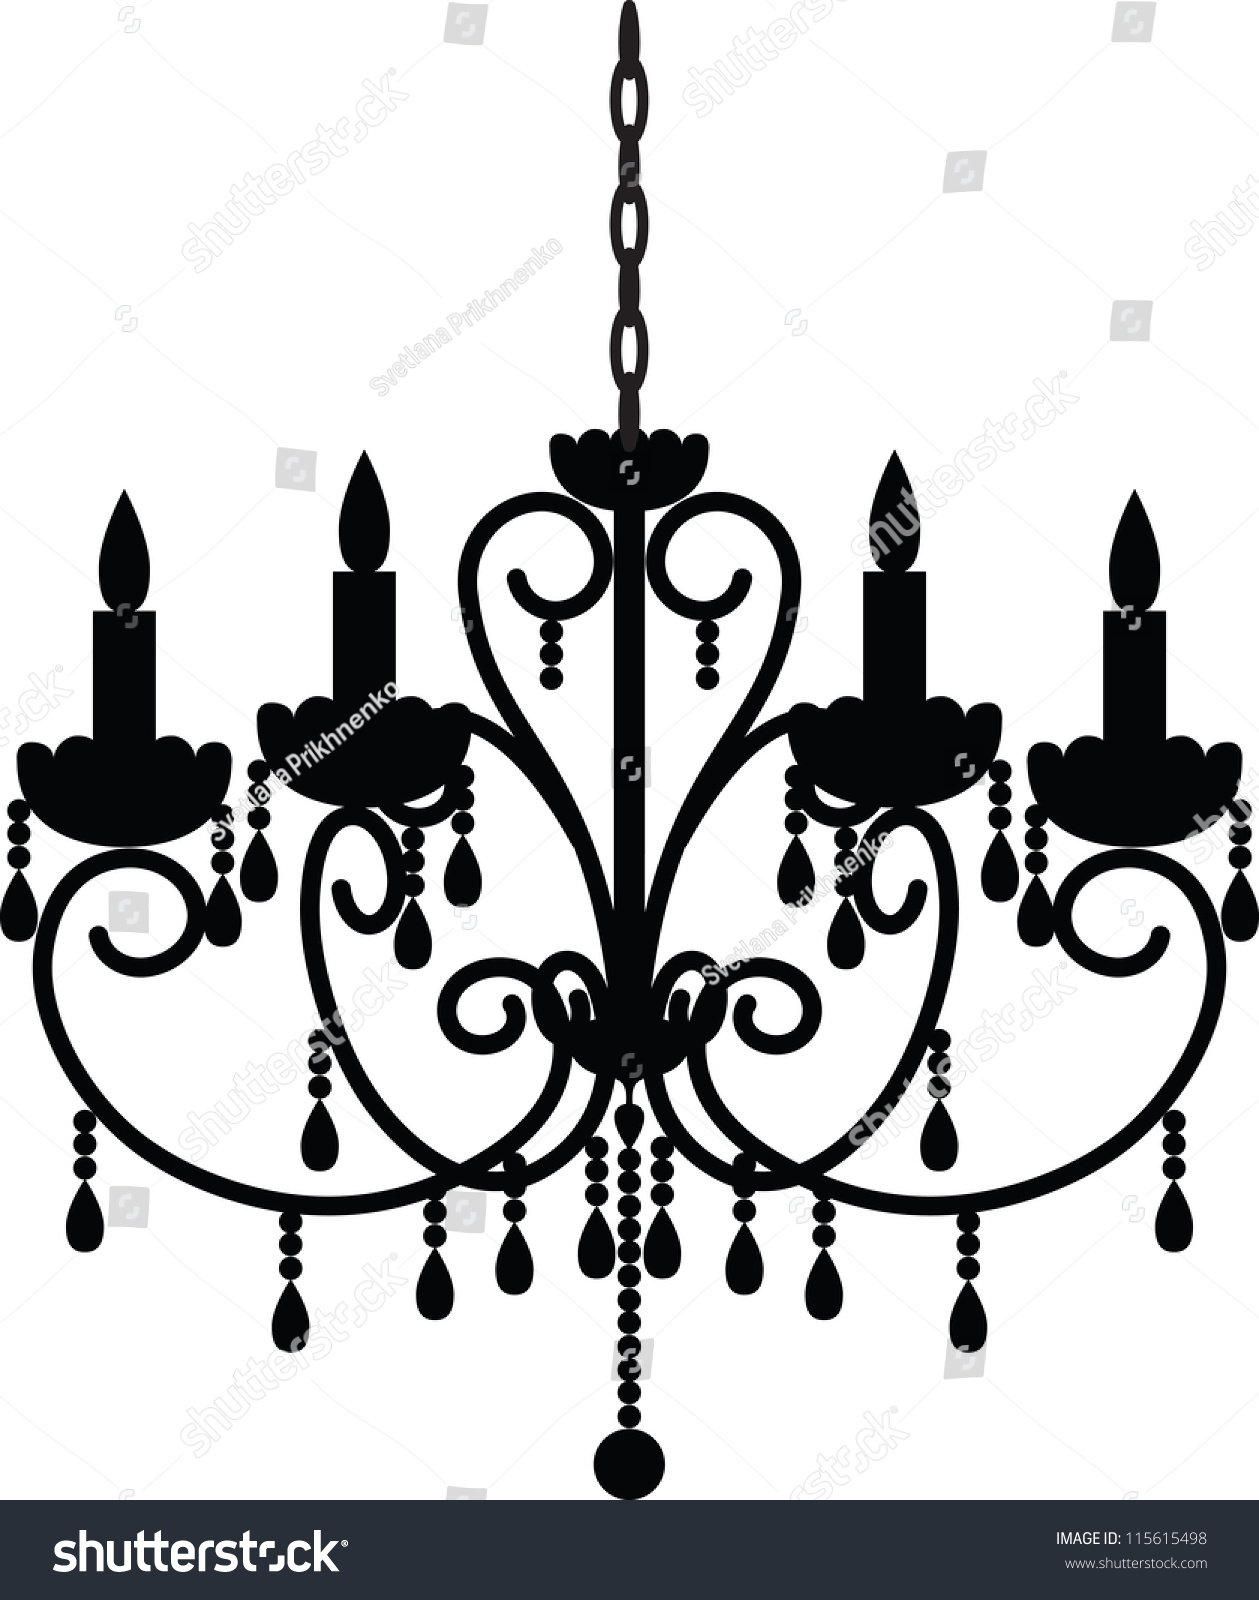 Silhouette Antique Chandelier Stock Vector 115615498 - Shutterstock